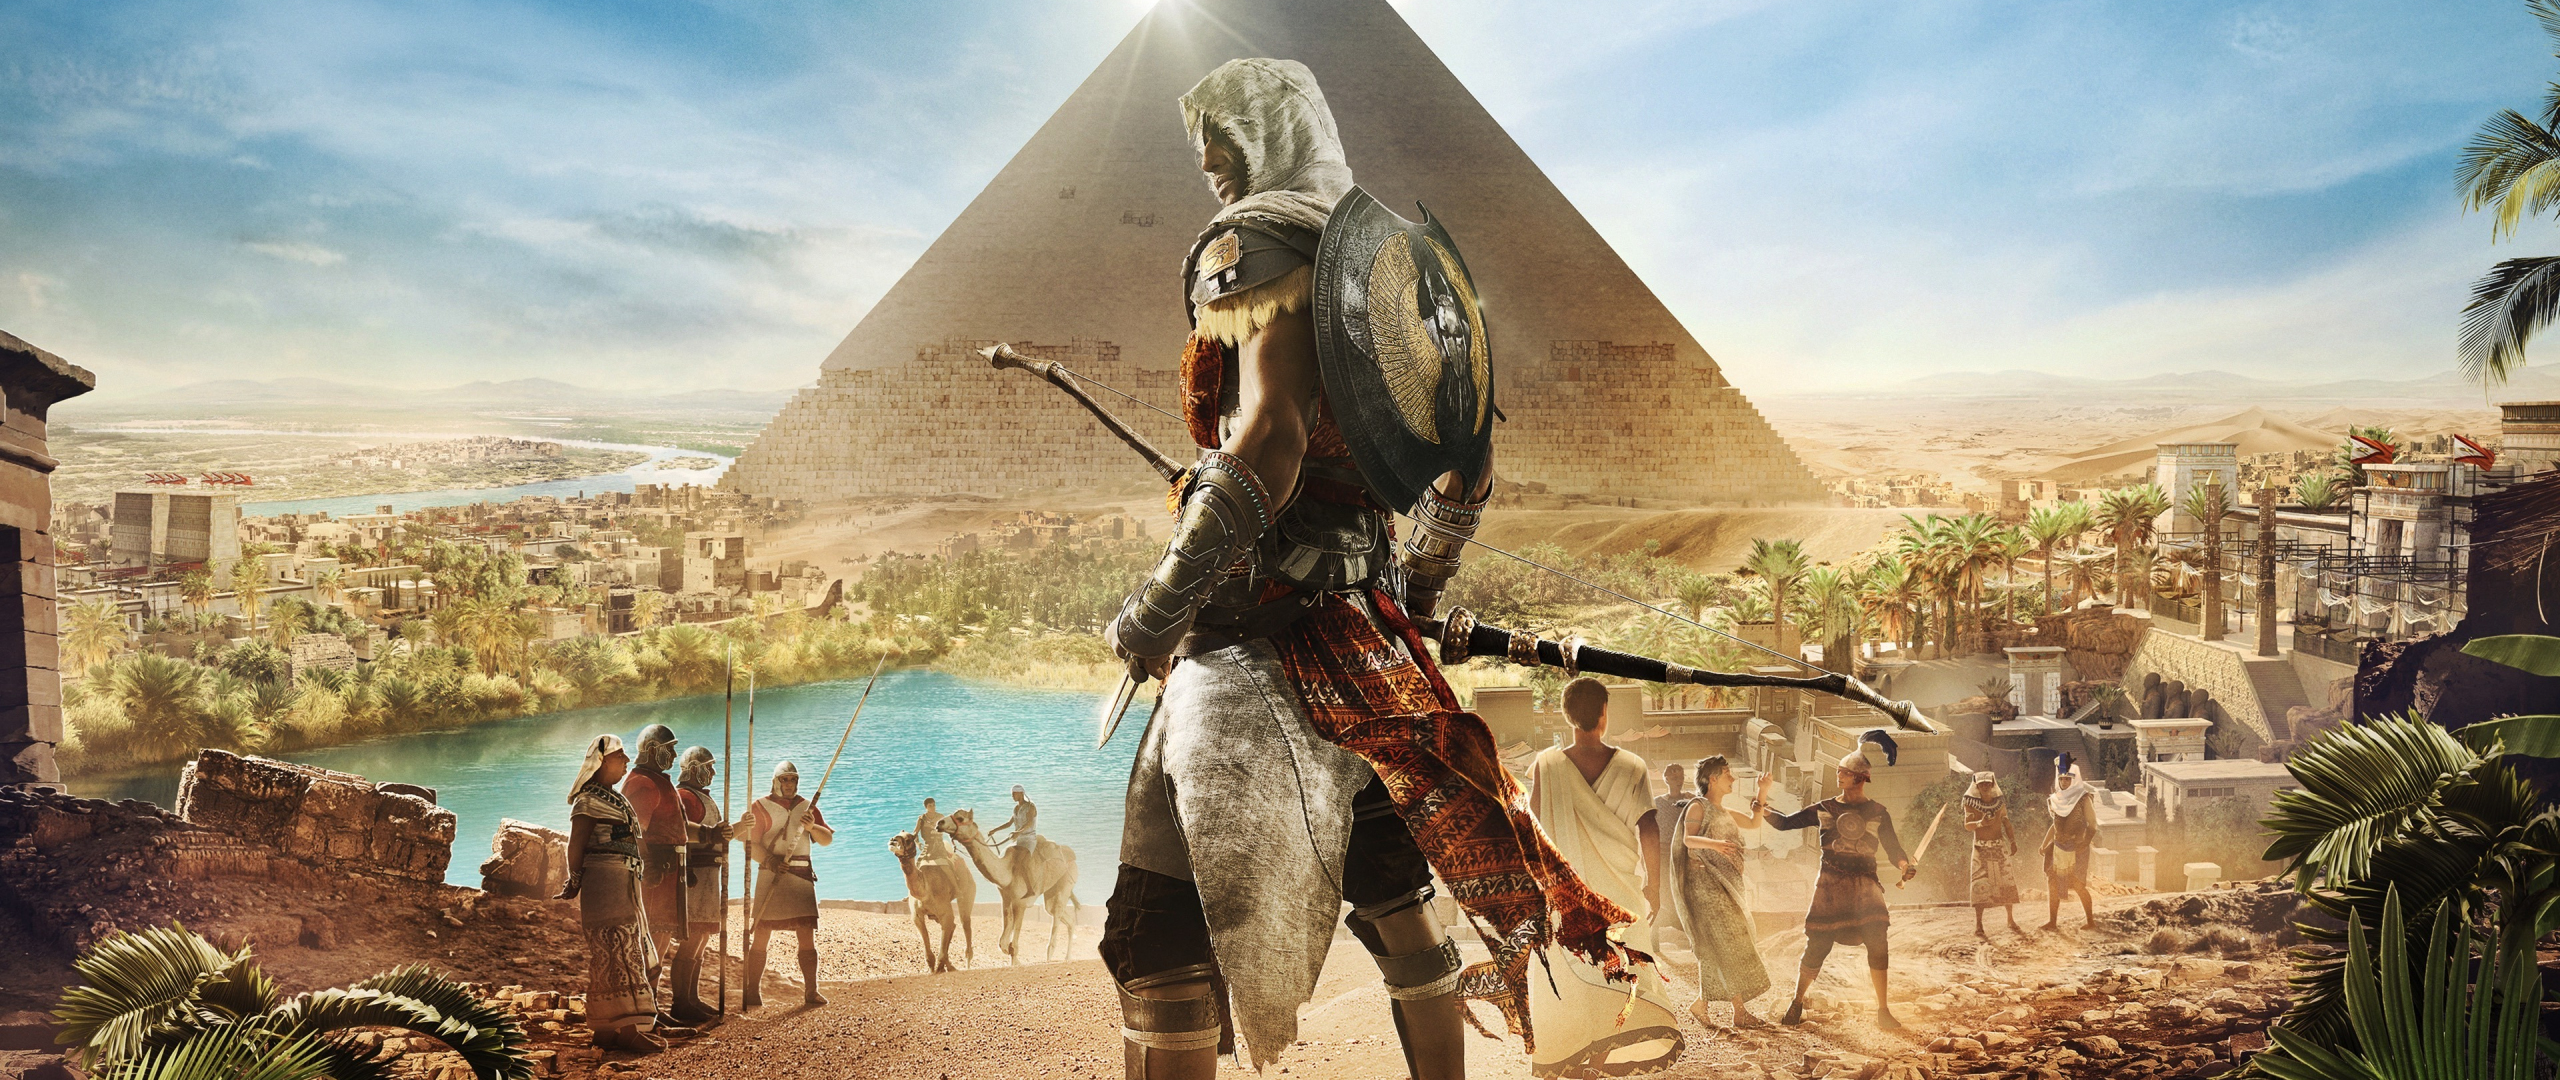 Cute Wallpaper For S5 Download 2560x1080 Wallpaper Assassin S Creed Origins